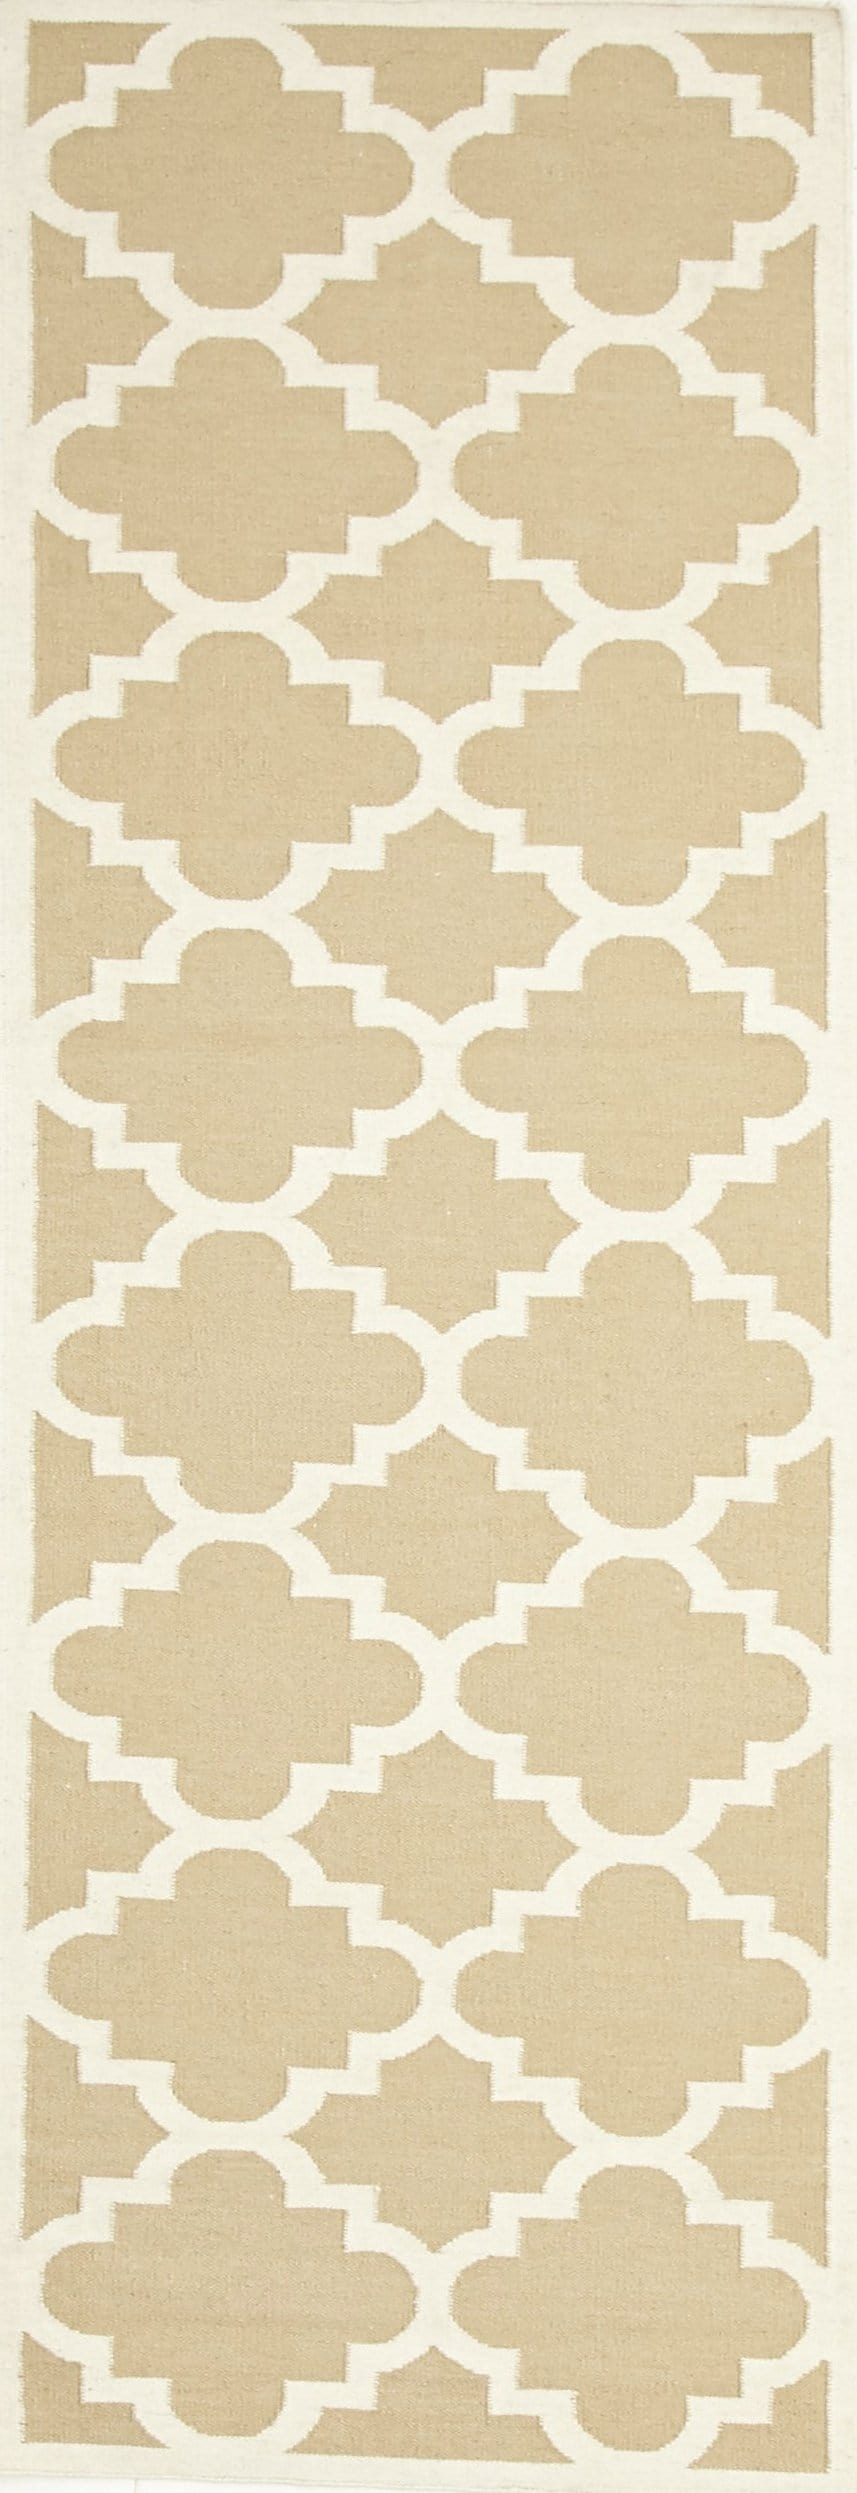 Jerusalem Beige Lattice Flatweave Dhurrie Runner Rug